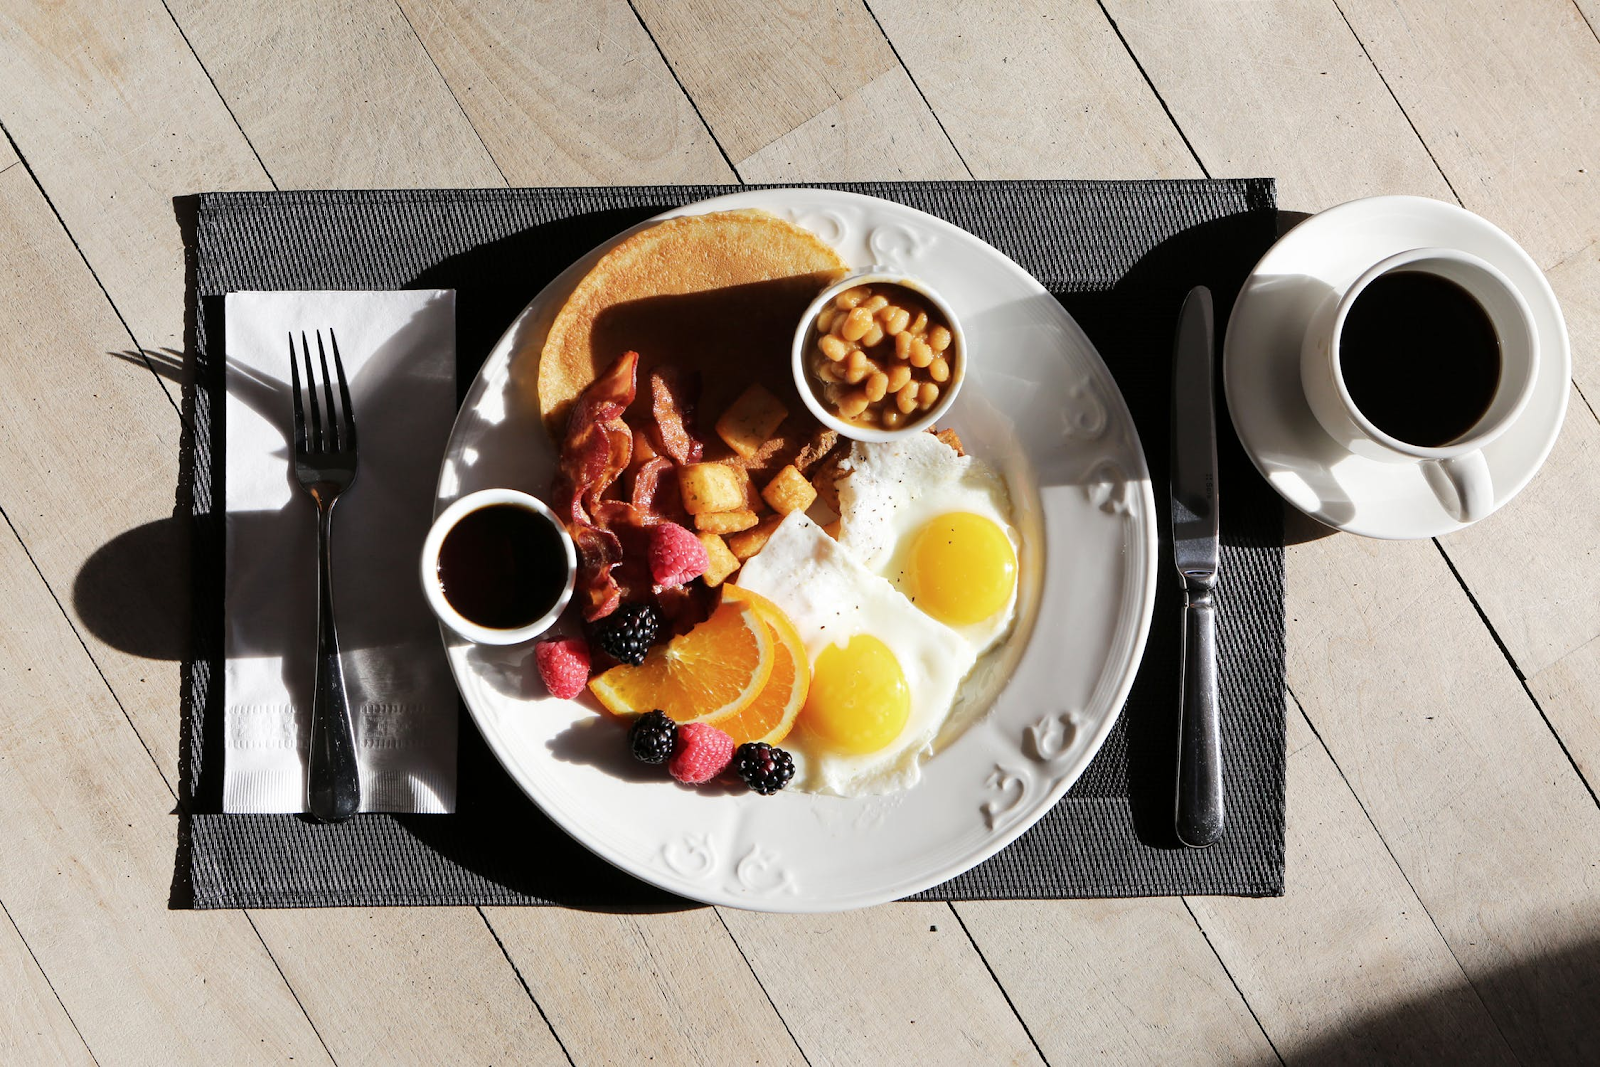 overhead view of a plate with eggs, toast, fruit, and beans and a cup of coffee